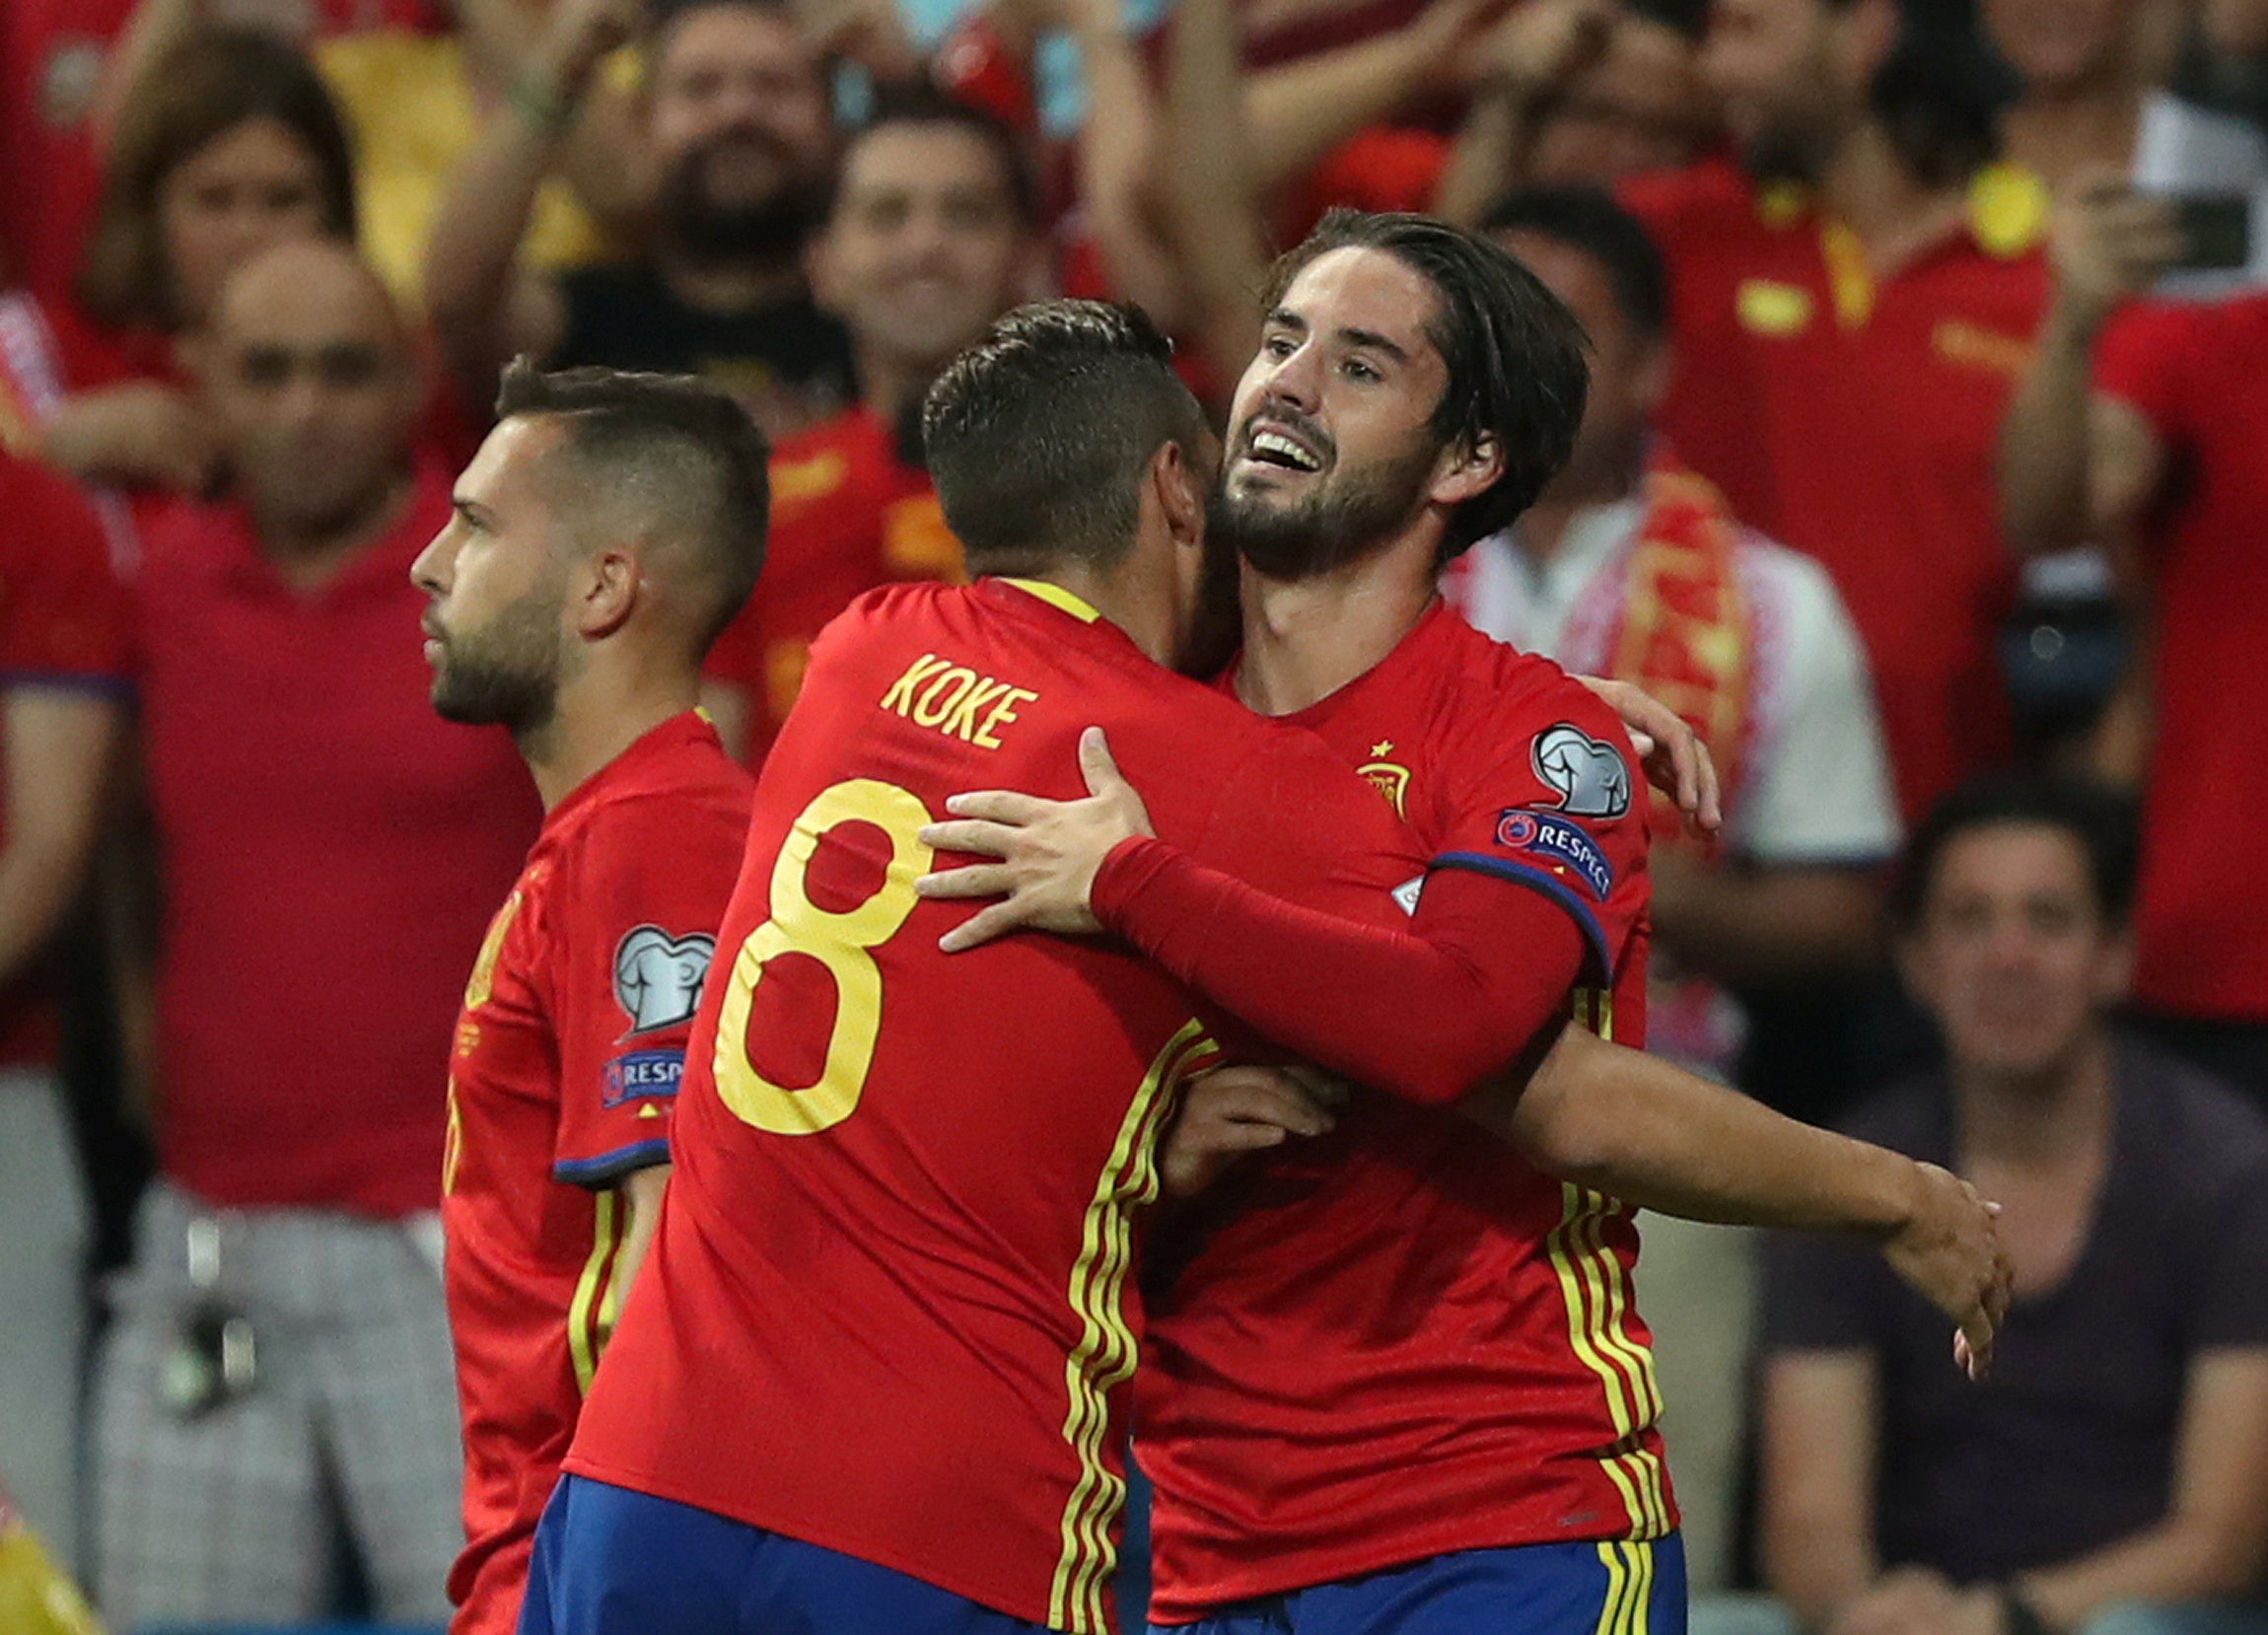 Soccer Football - 2018 World Cup Qualifications - Europe - Spain vs Italy - Madrid, Spain - September 2, 2017   Spain's Isco celebrates scoring their first goal with Koke    REUTERS/Susana Vera